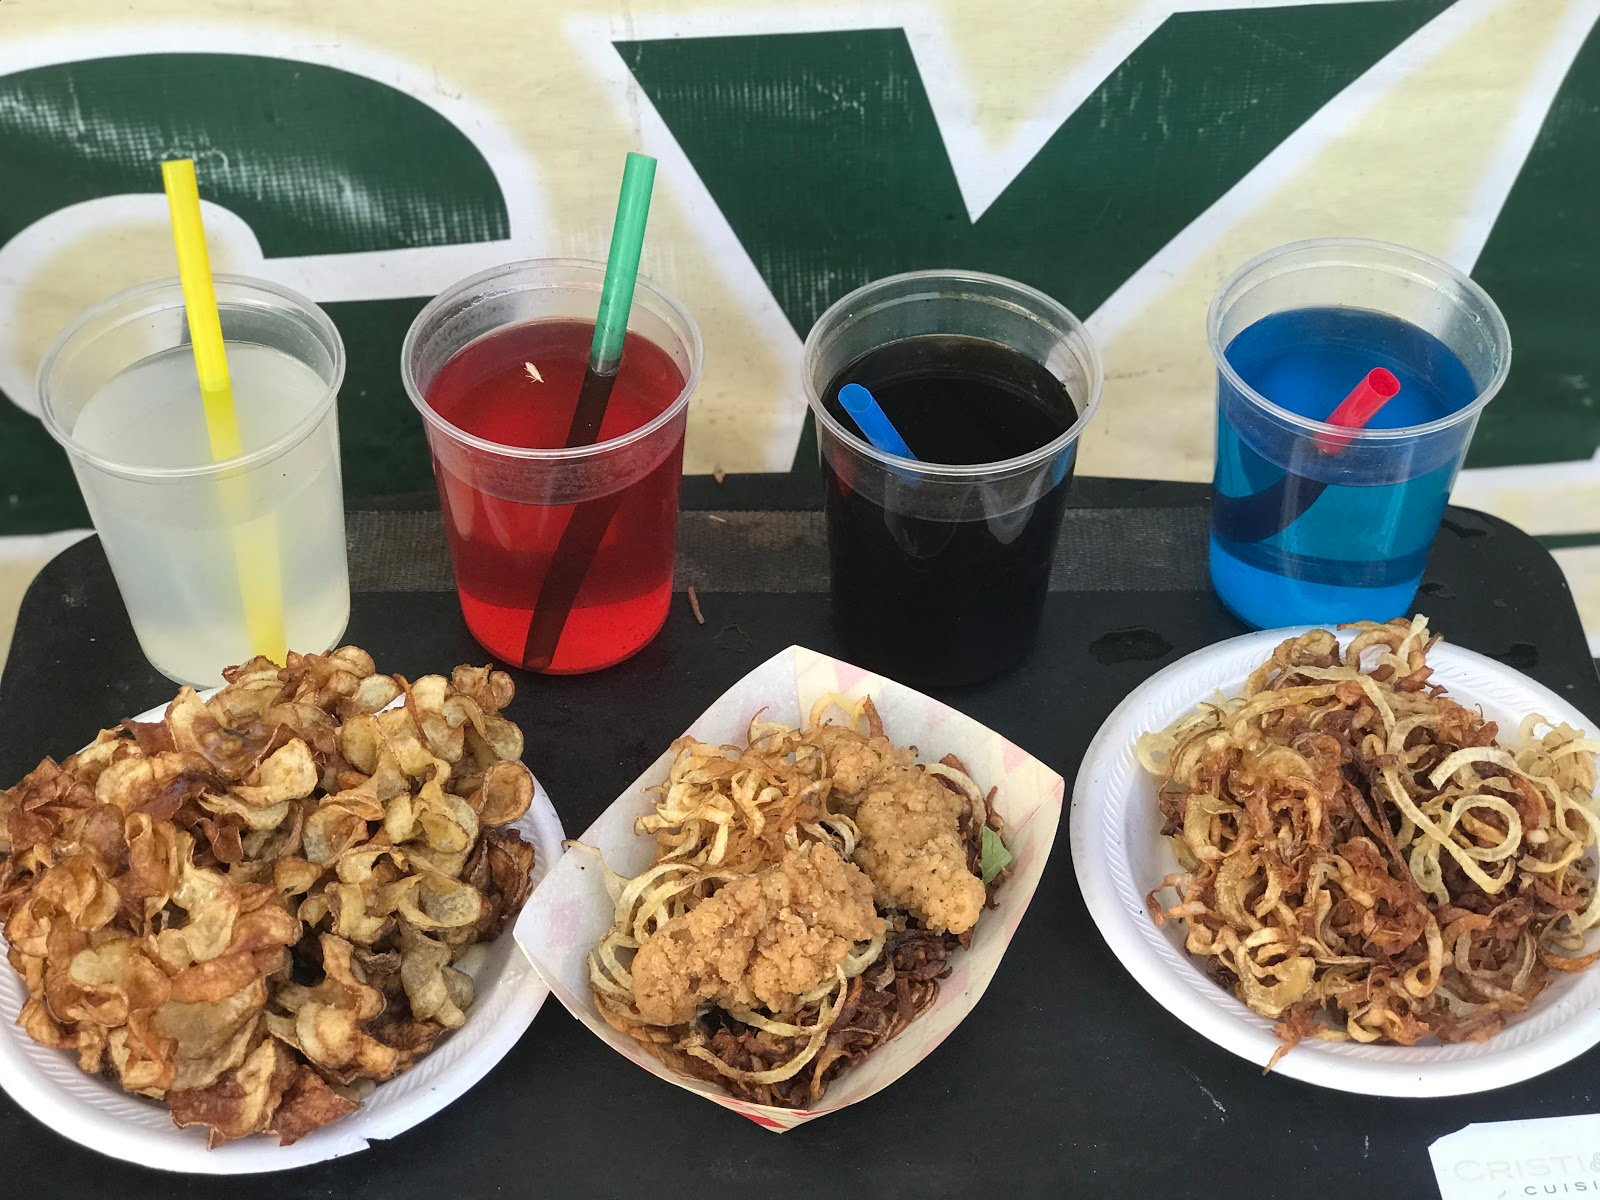 Image:Fried foods at carnival oktoberfest addison texas. Family Day Out: Soaking Up The Sun, Eating Junk Food And Capping Off Summer's End!